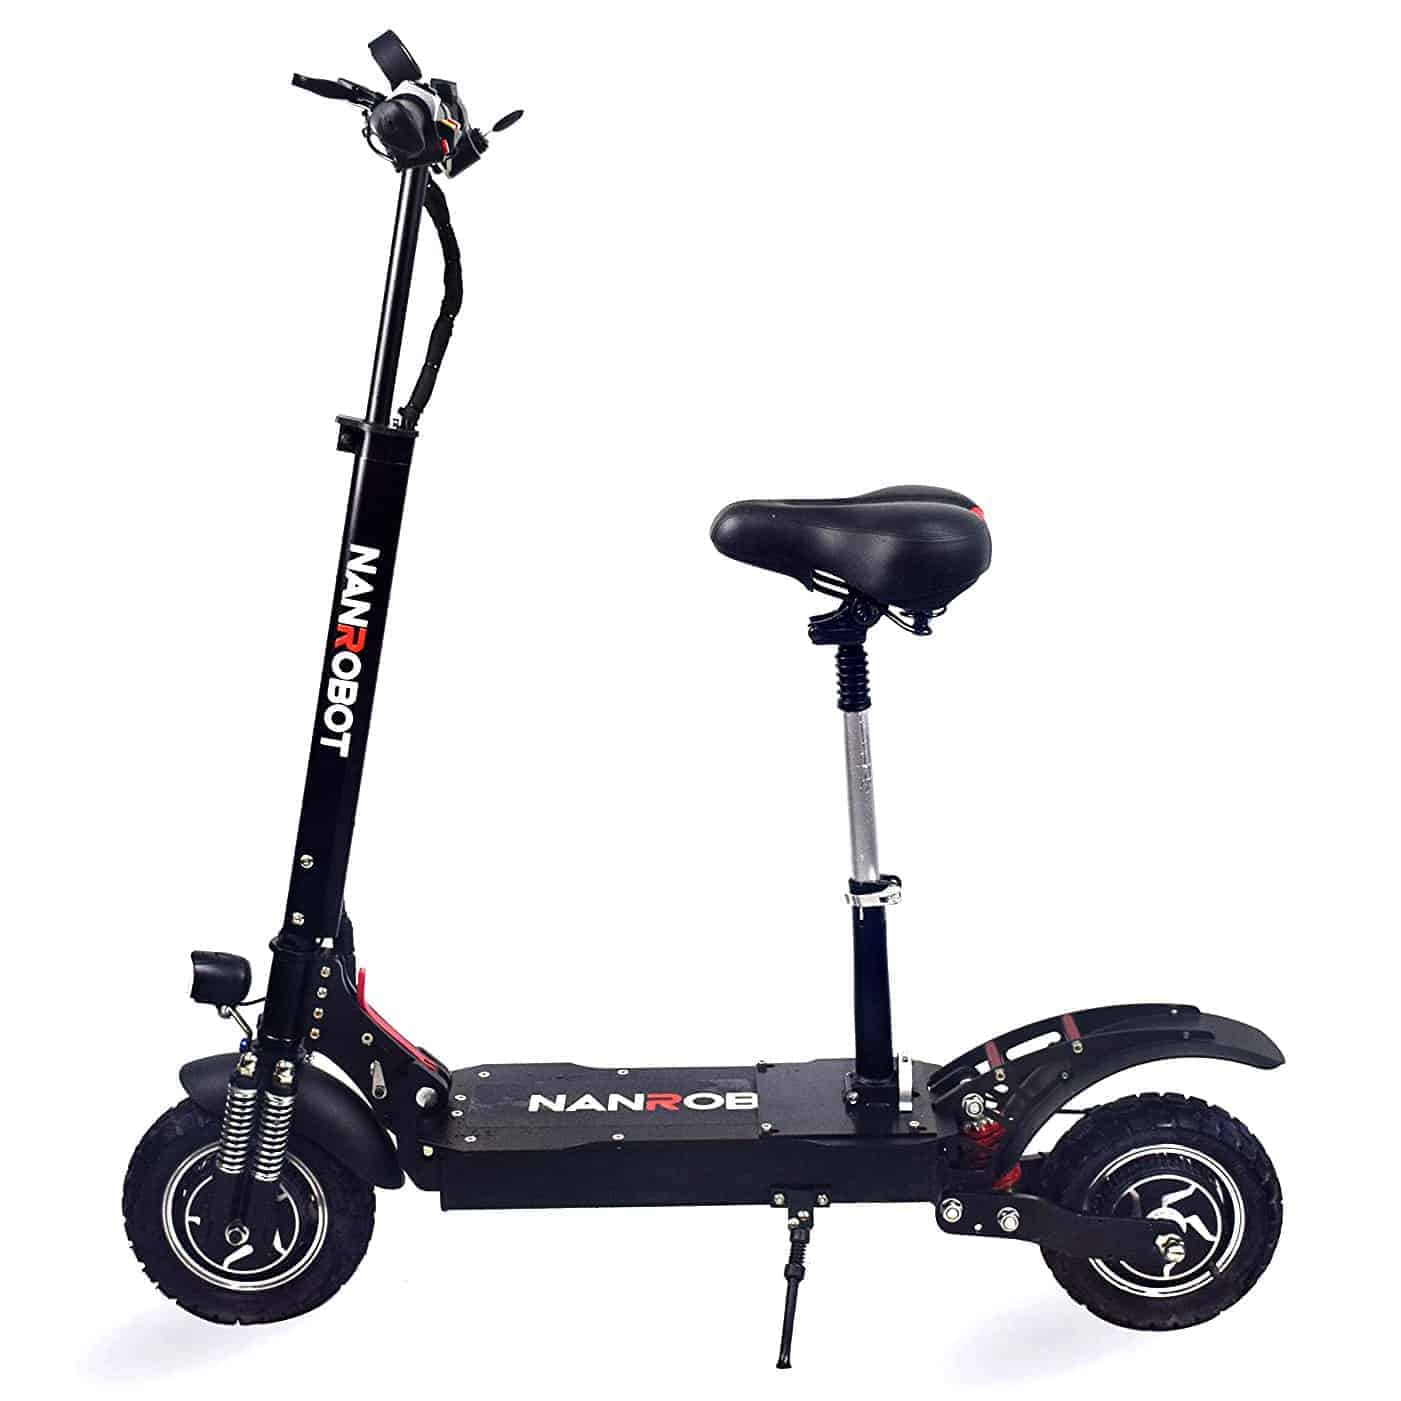 Nanrobot Scooter with Seat